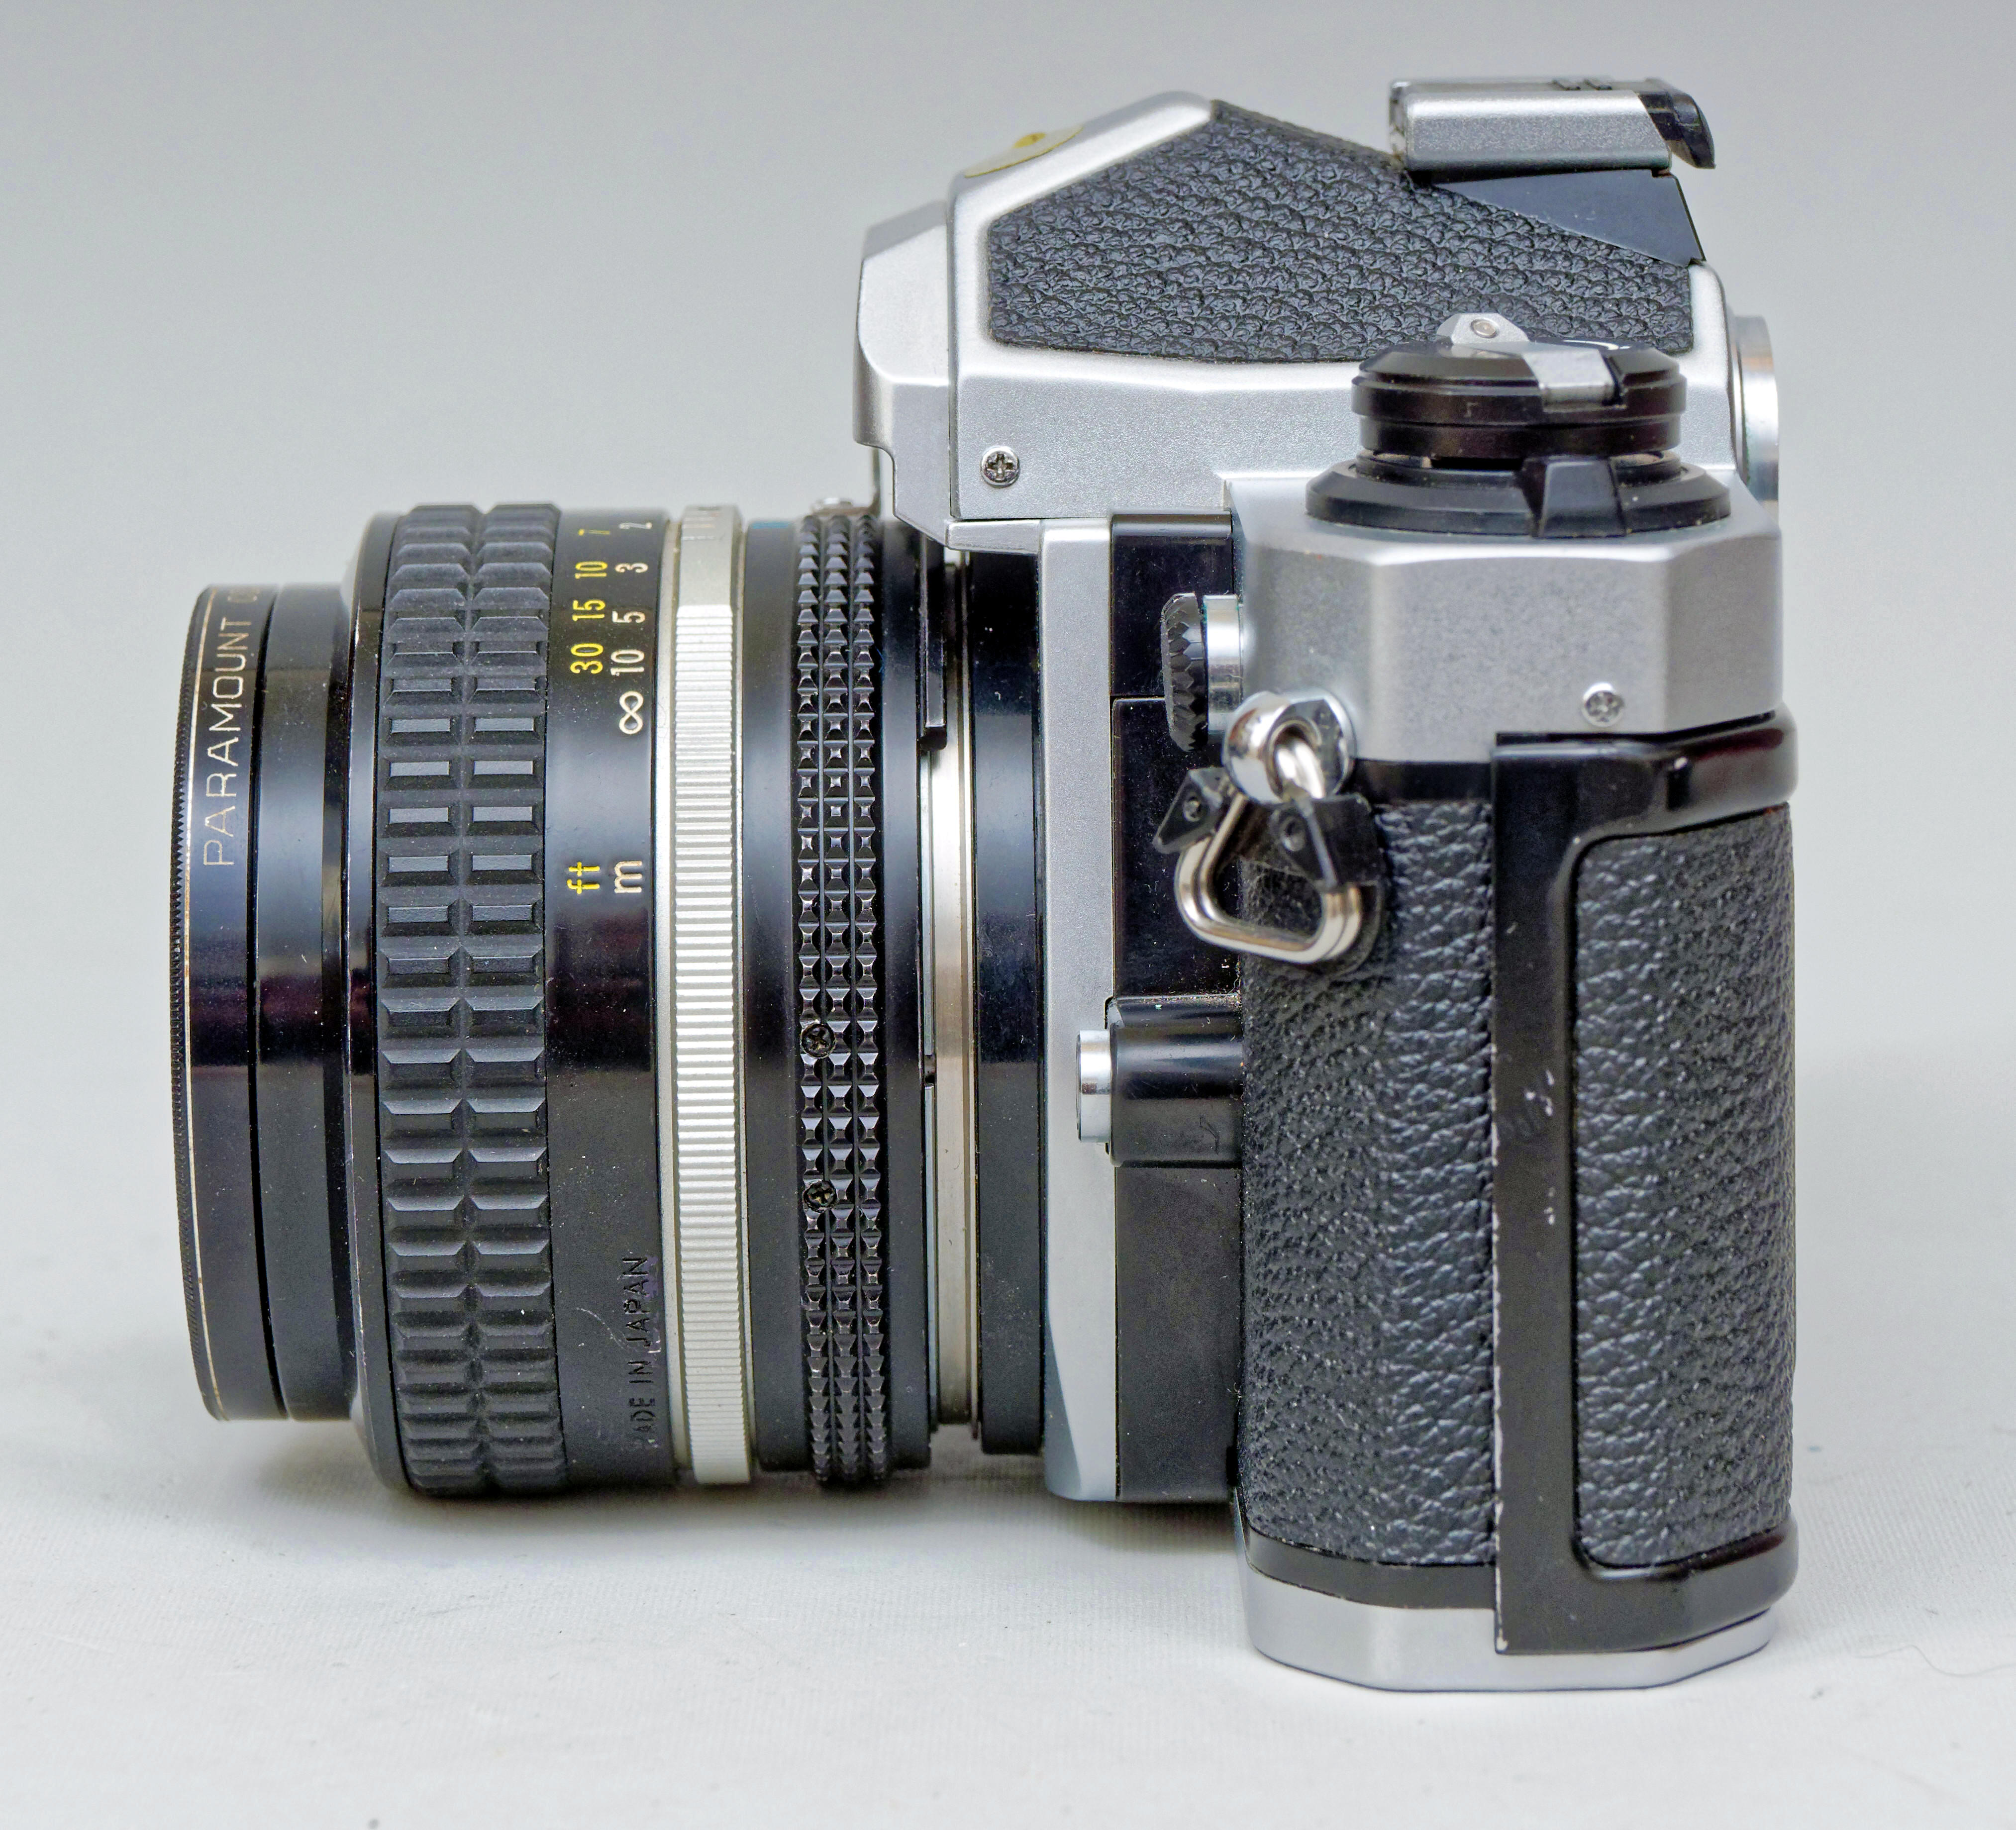 This should be Nikon-FM2-5.jpeg.  Is it missing?